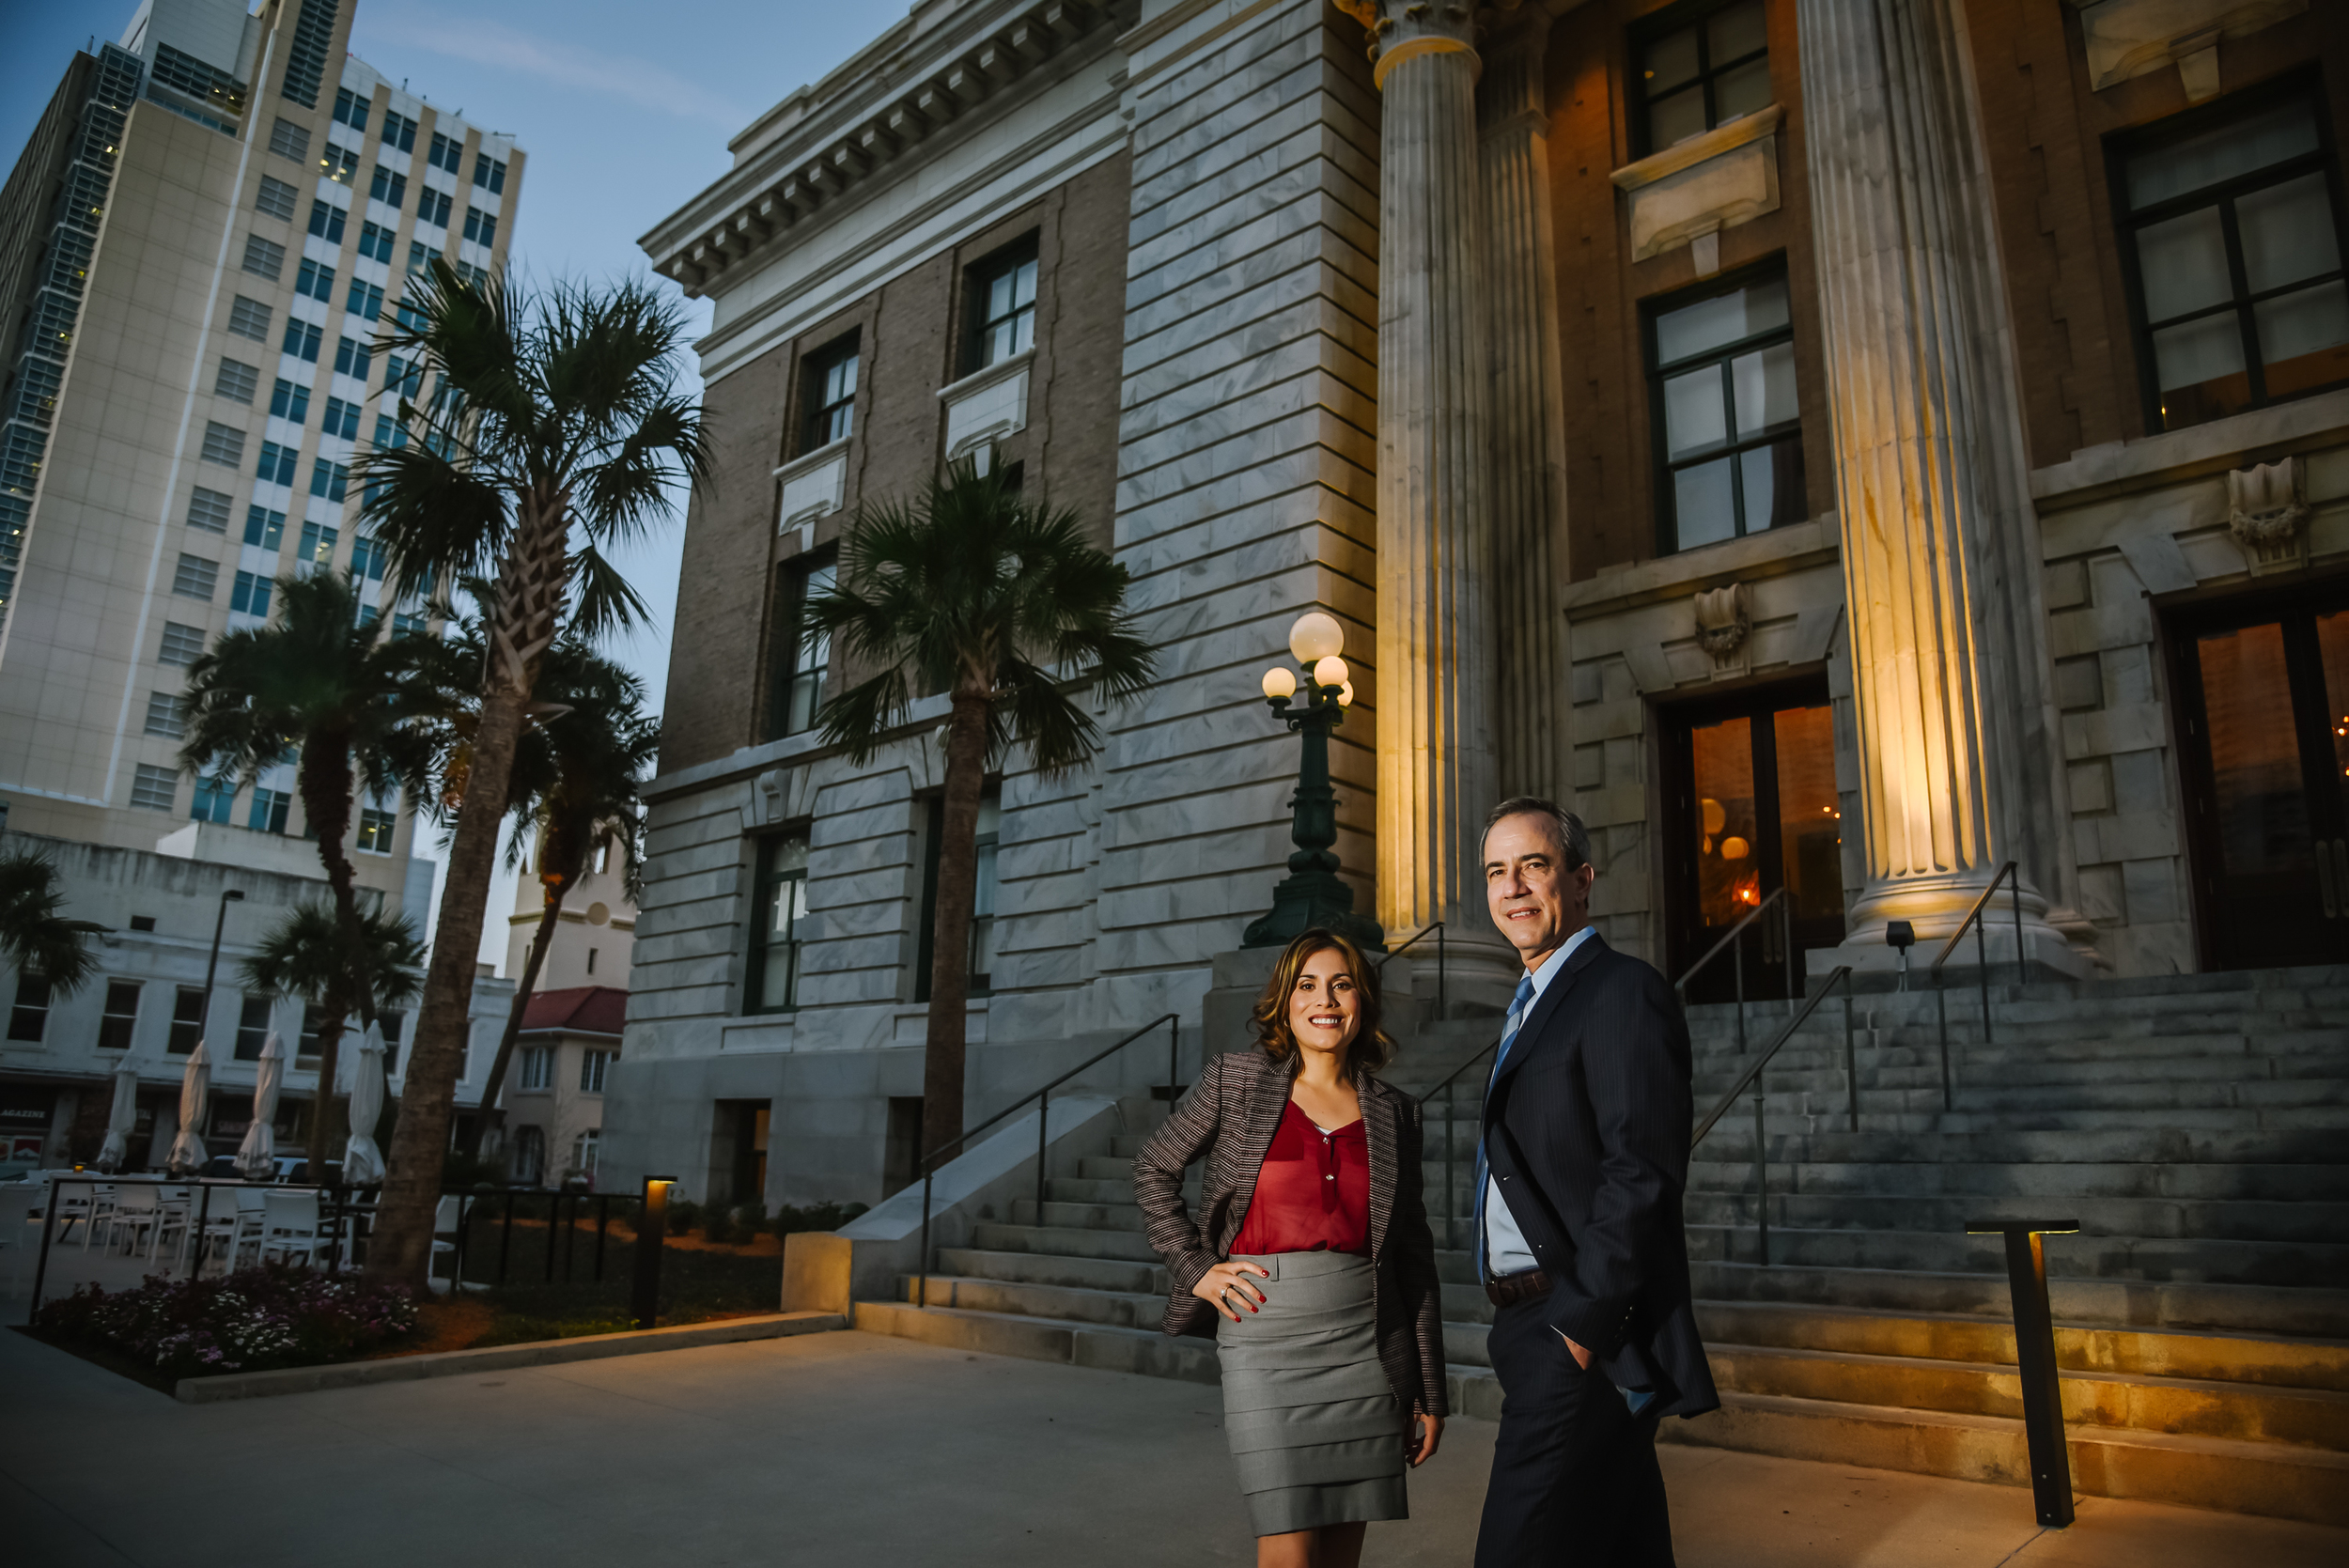 Next the Fiol Law partners were in need of new portraits. We shot head shots in the studio then ended with some epic frames in front of the old courthouse in downtown Tampa at twilight.